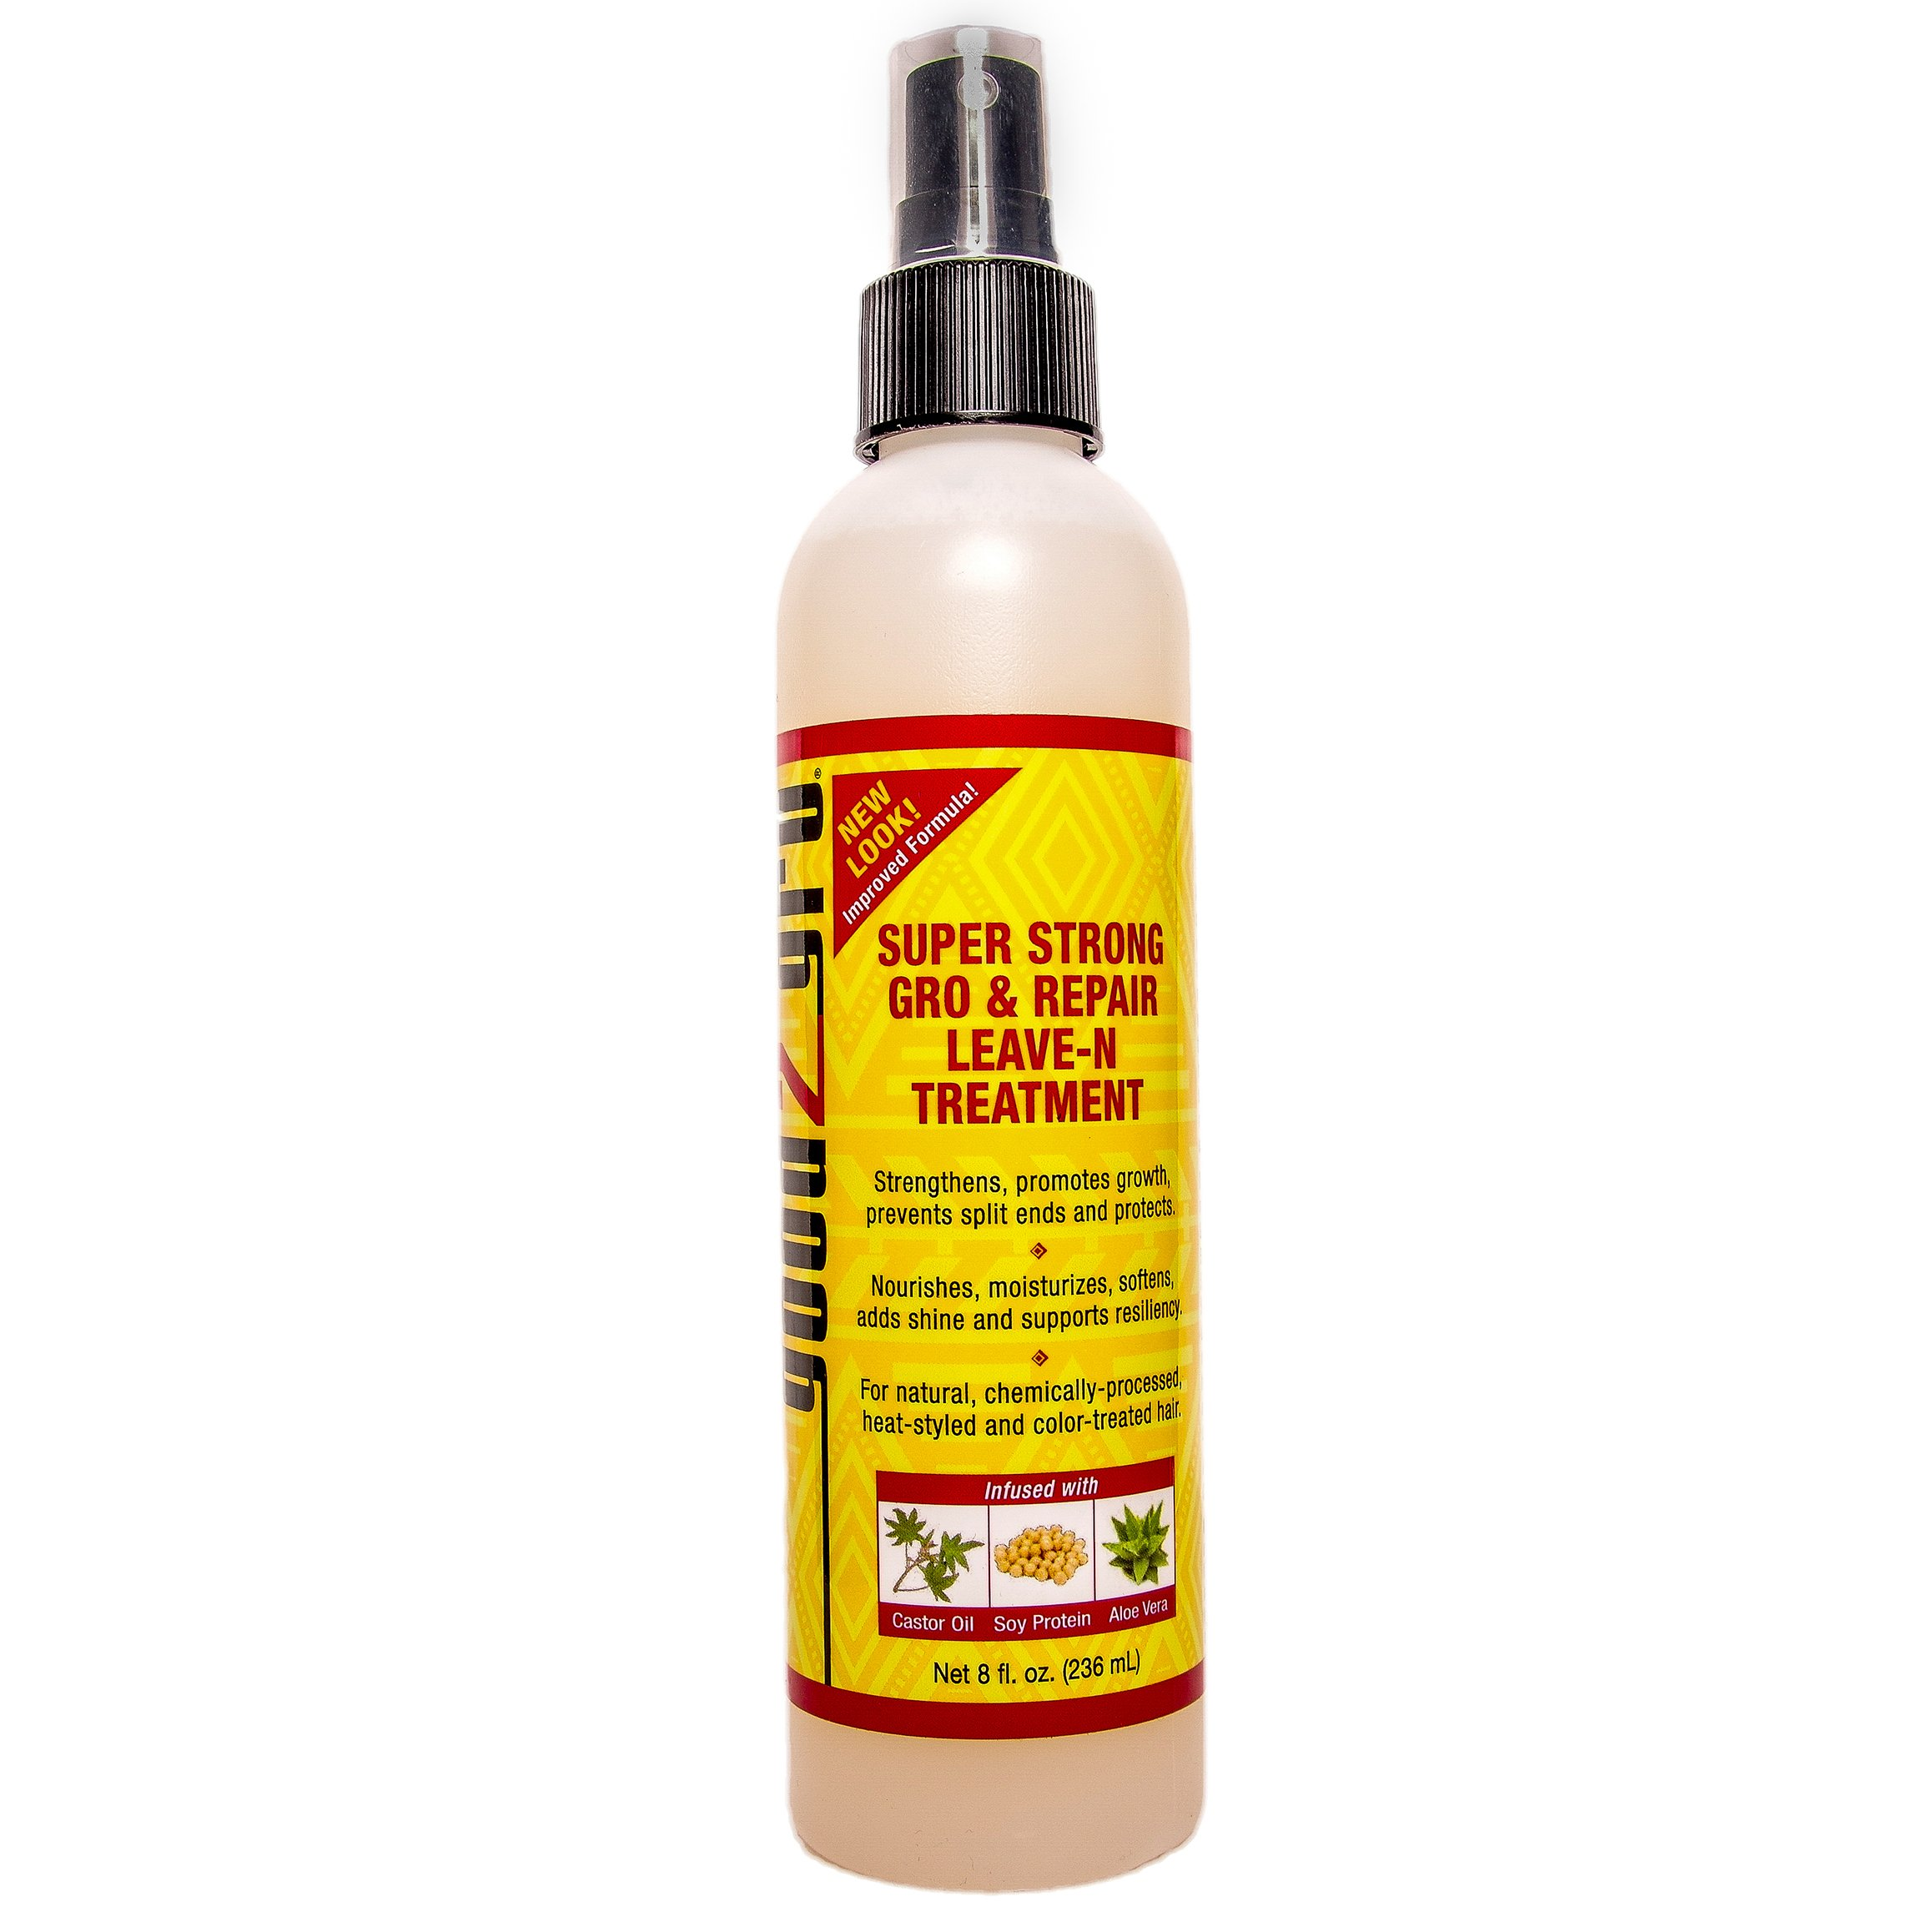 Good2Gro Super Strong Gro & Repair Leave-N Treatment Natural and Organic Ingredients - Moisturizes and Hydrates Three Times Better Than Conventional Leave-N-Conditioners- For Men & Women